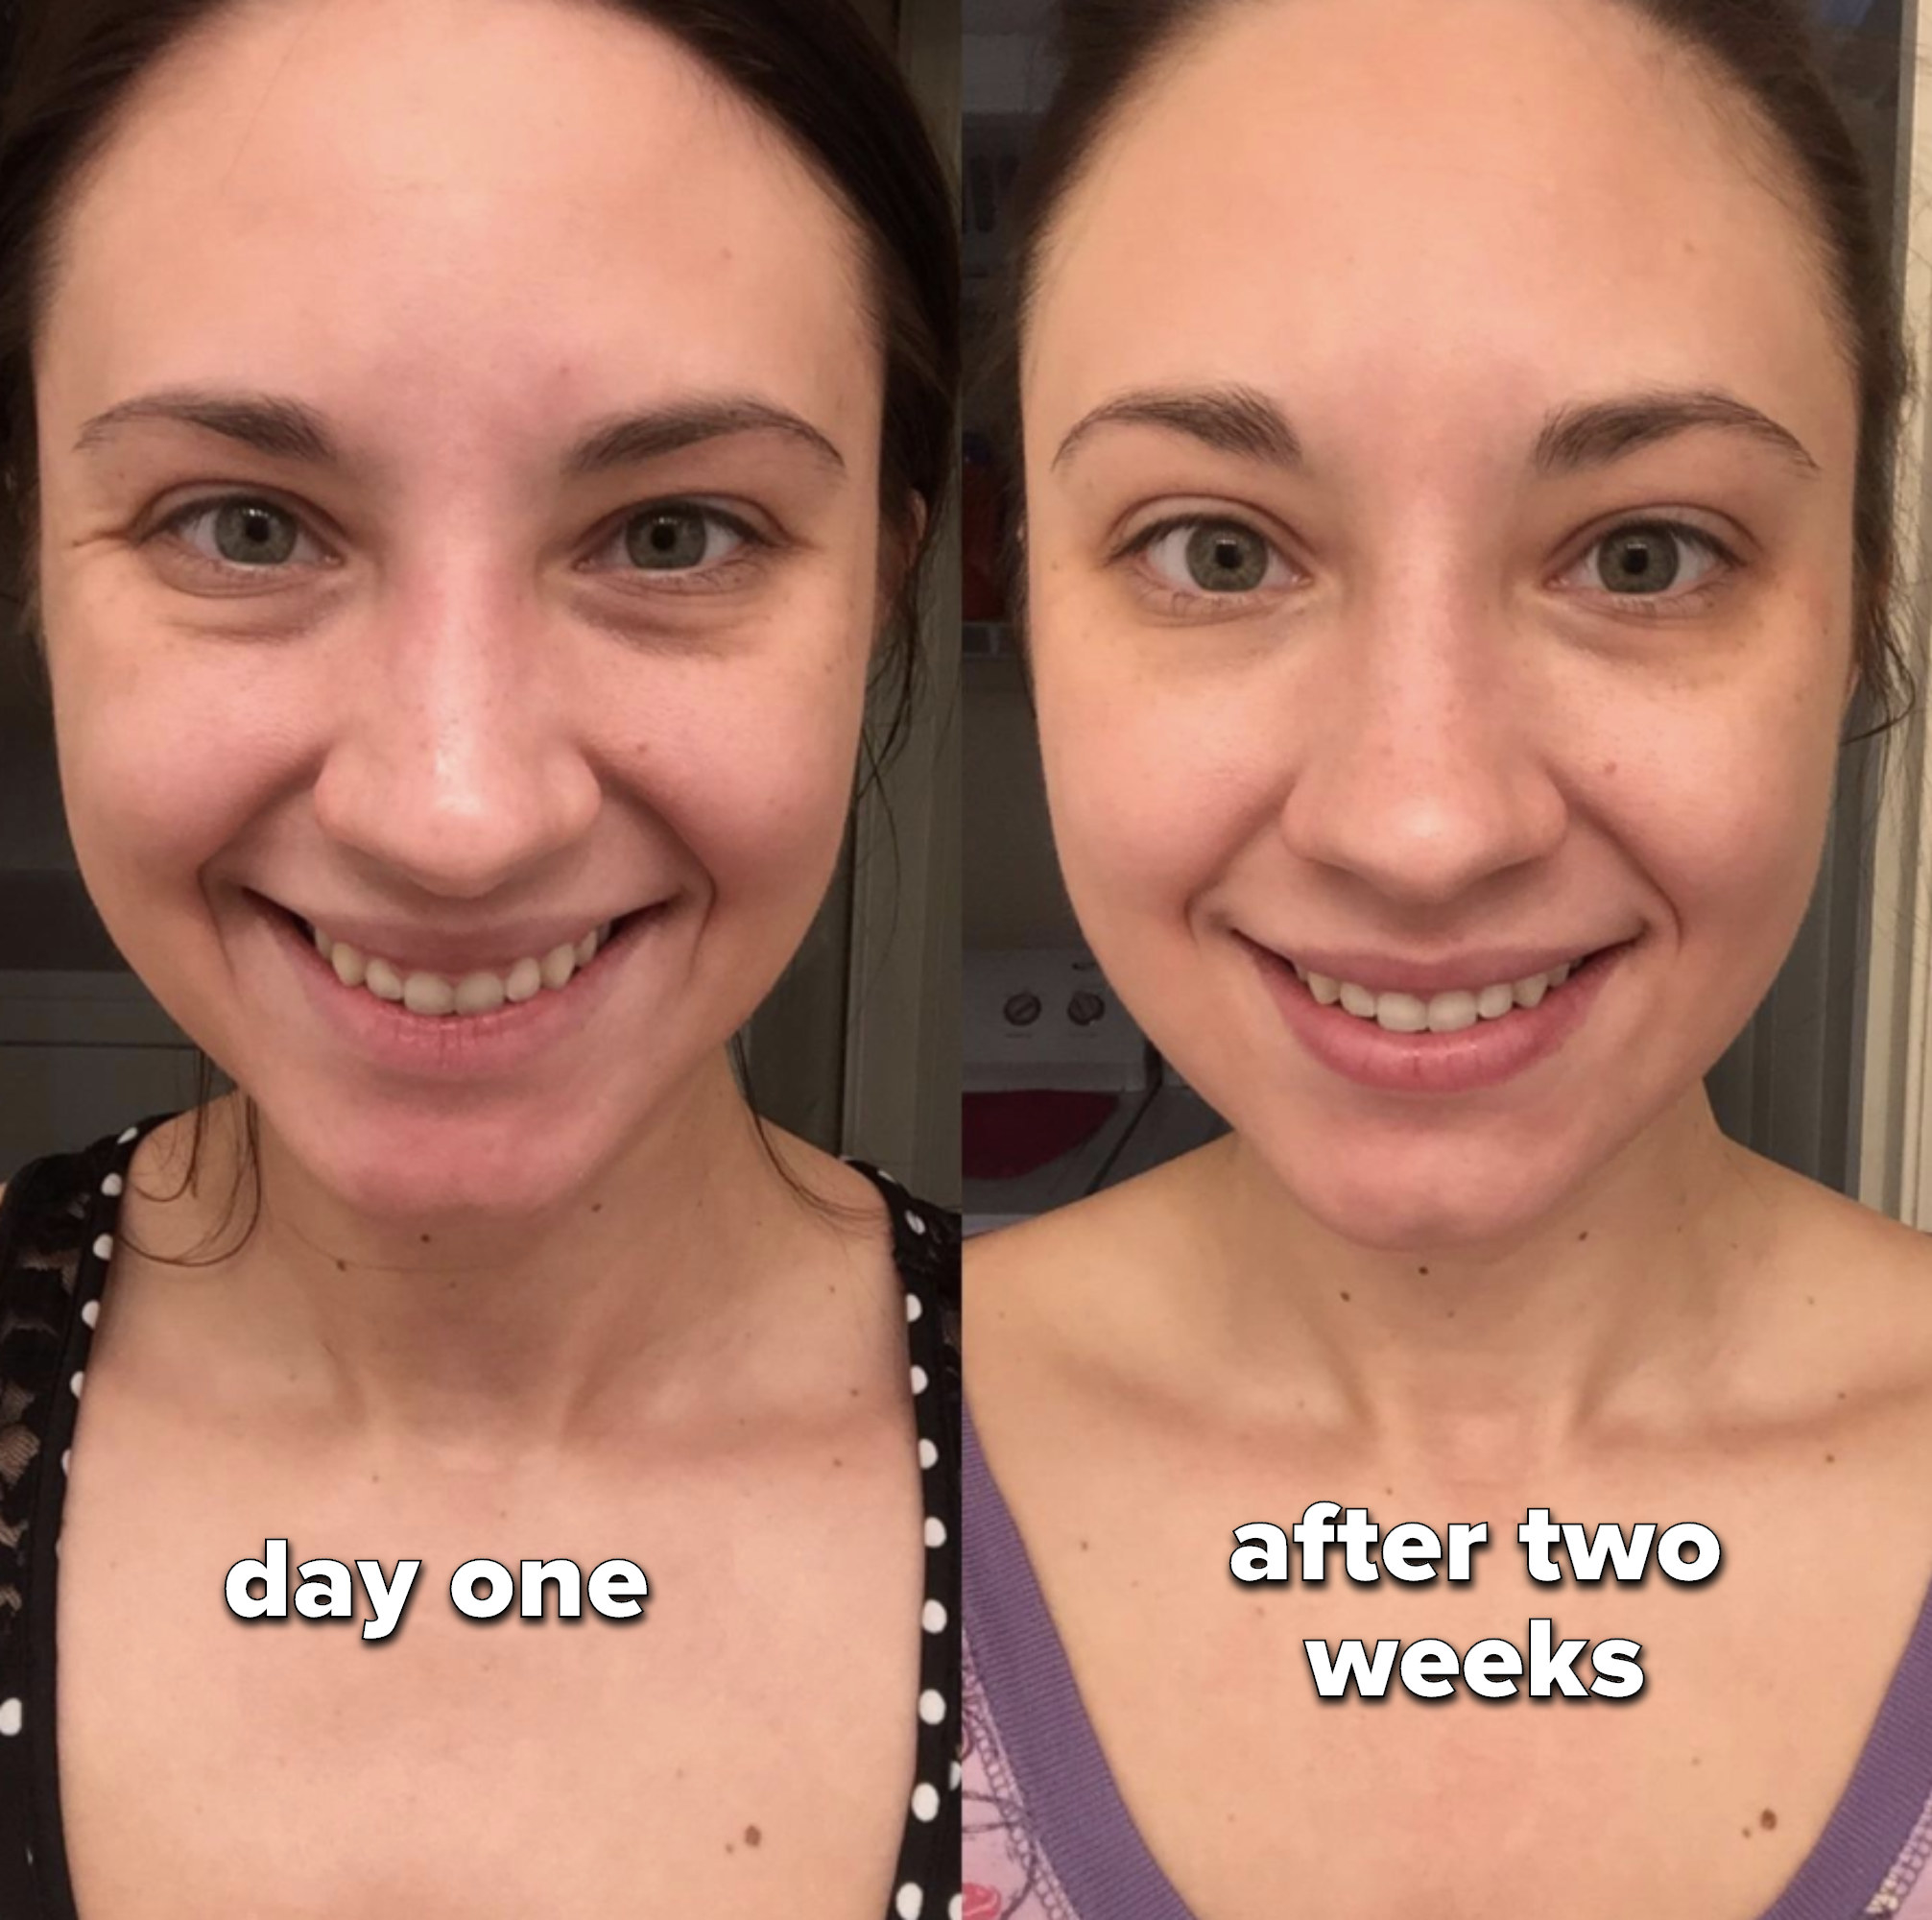 Reviewer image of day one face and their face after two weeks, with more of an even tone and refresh